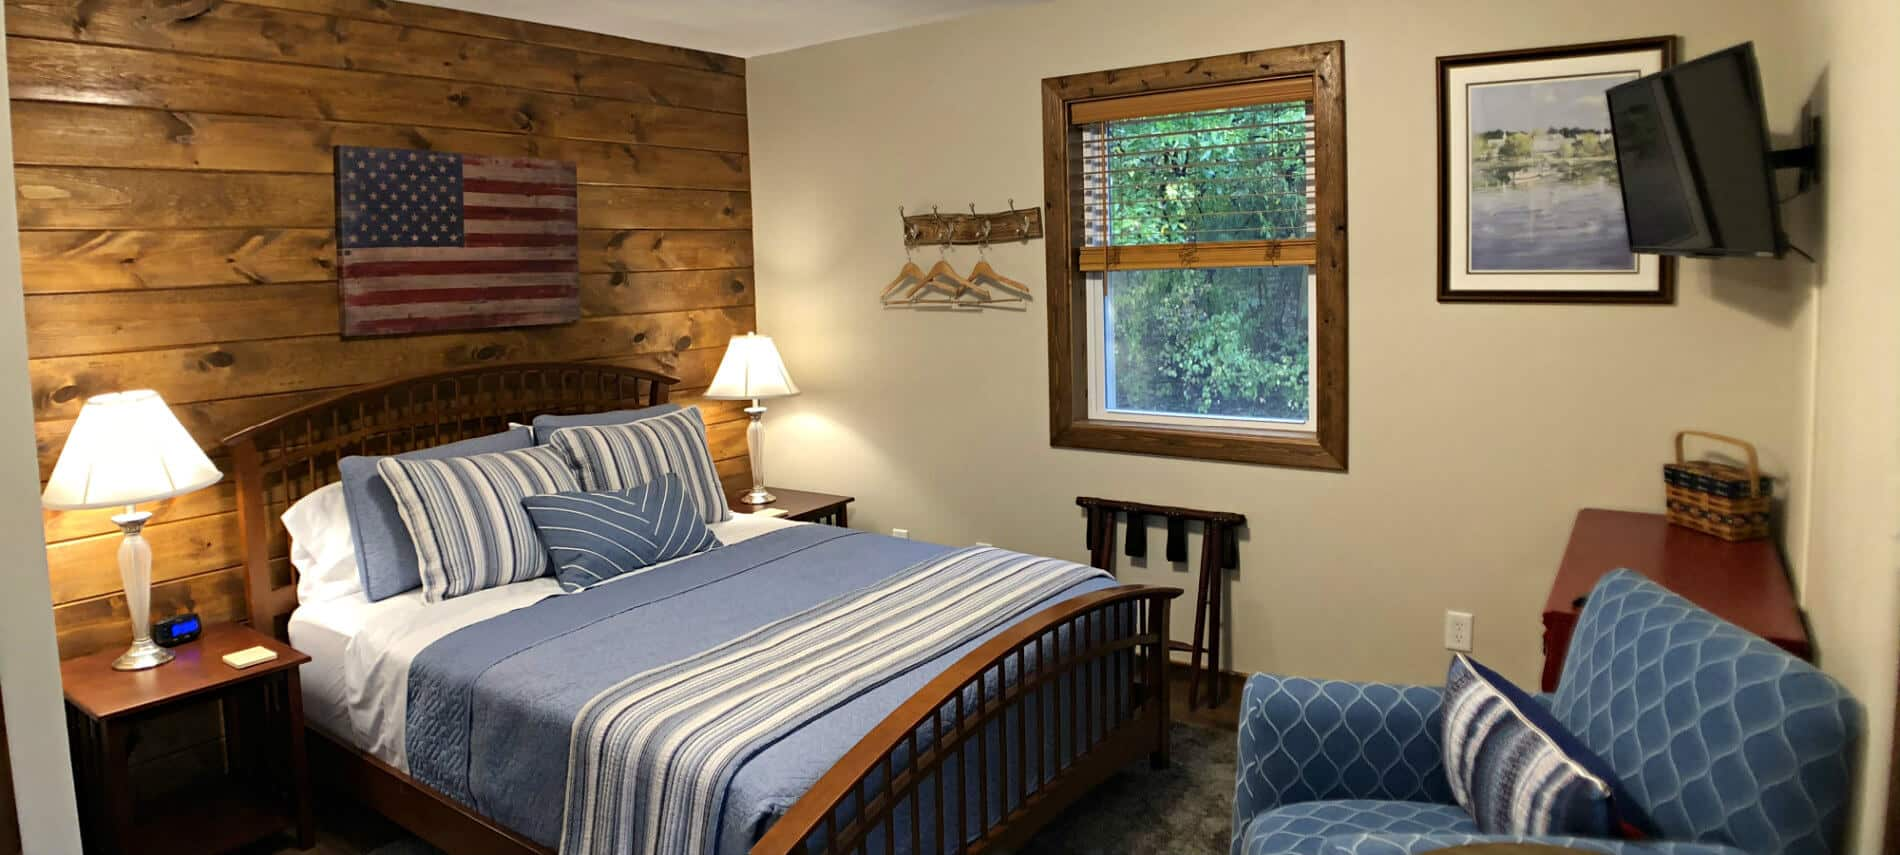 Sycamore guest room with plank wall, blue bedding and chair, nightstands, TV and small window